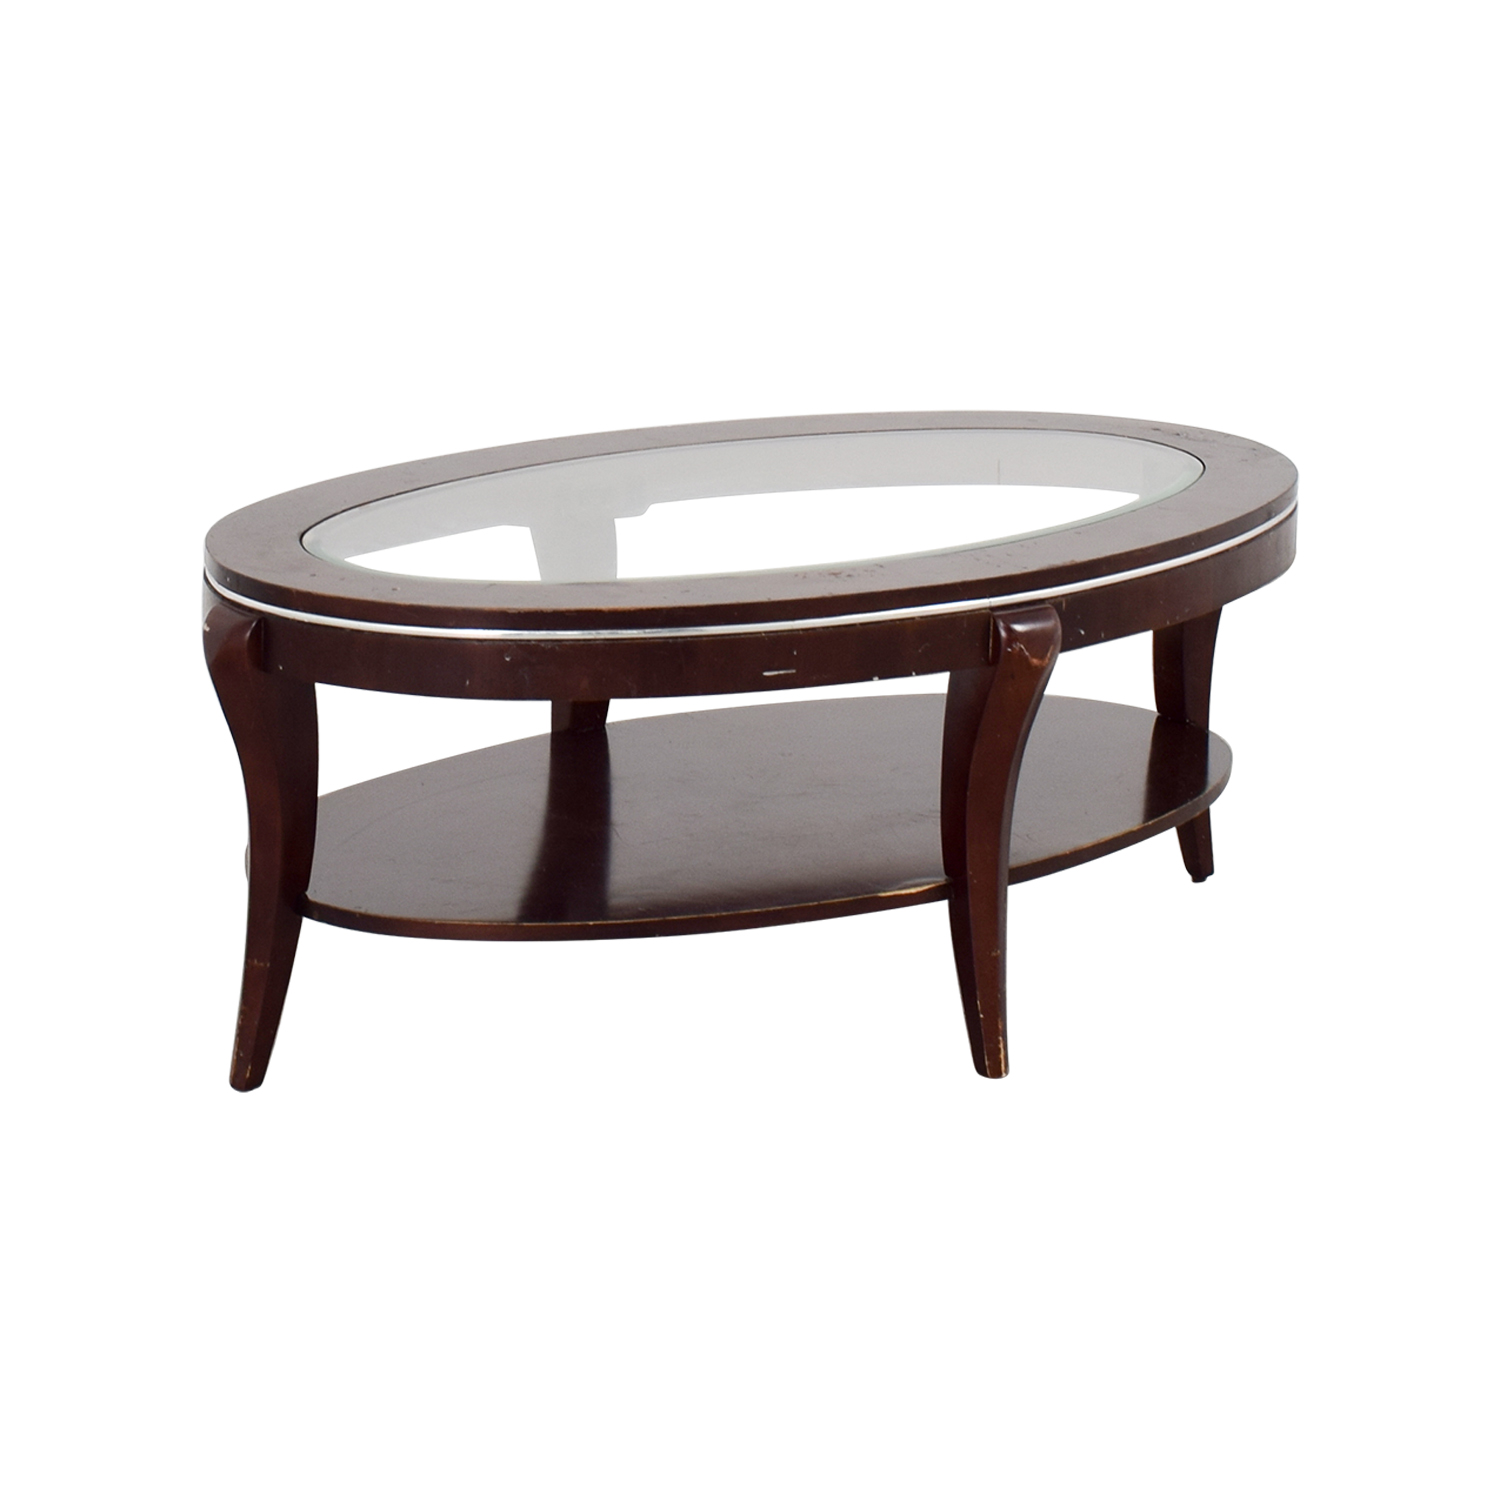 89 off wood and glass oval coffee table tables Wood oval coffee table